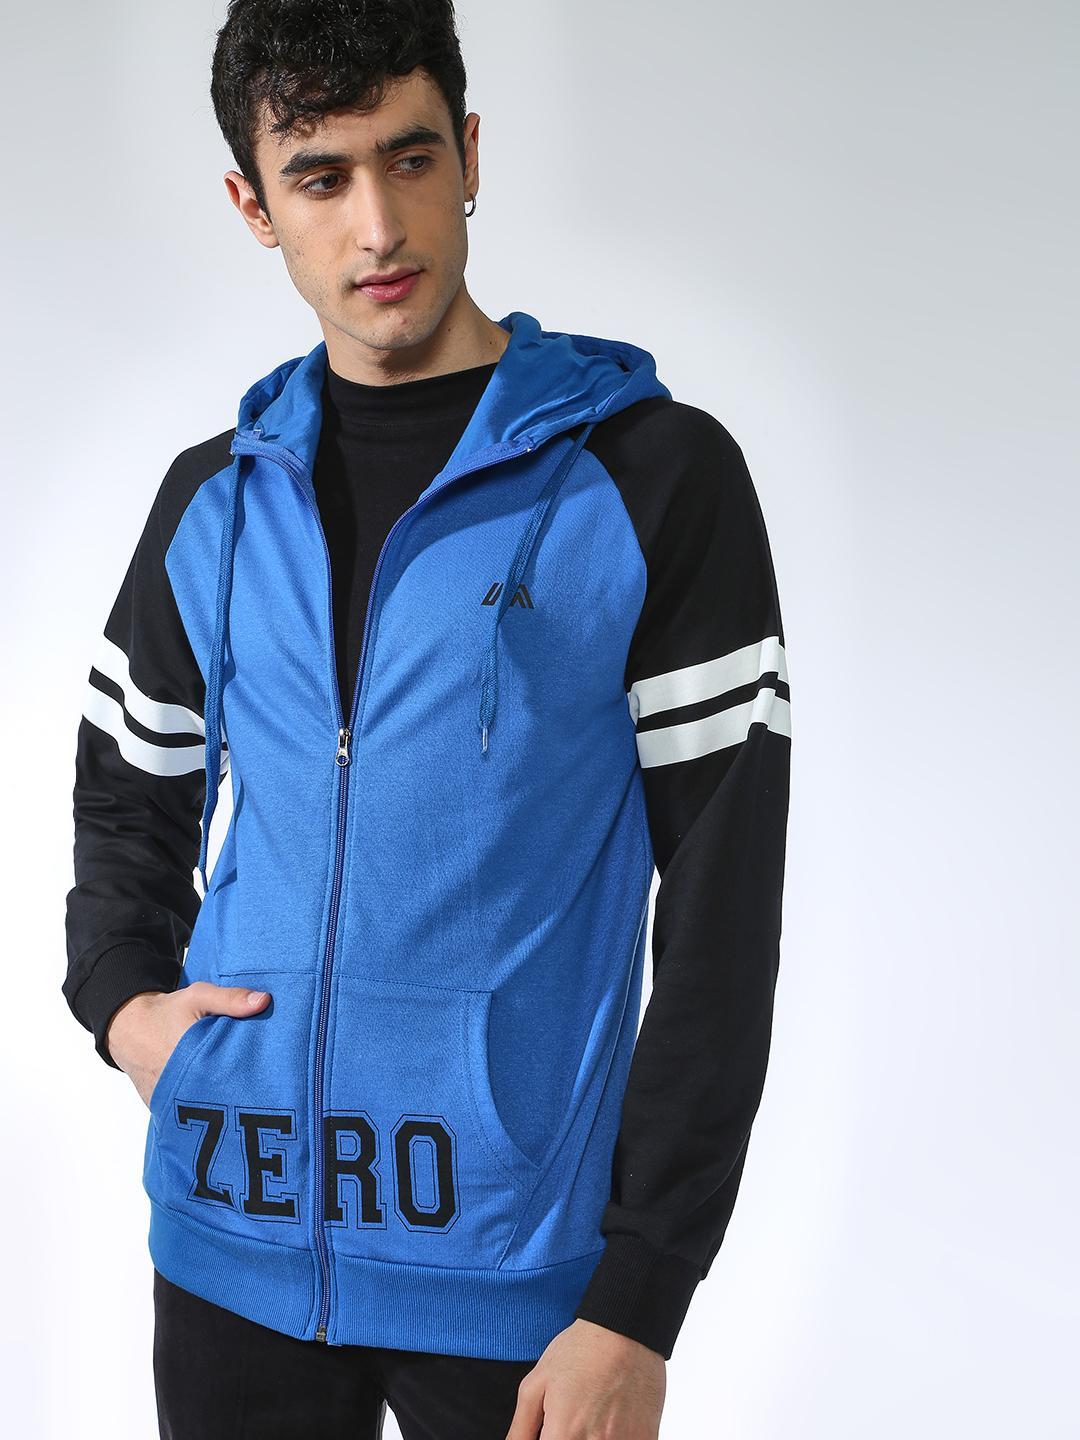 MASH UNLIMITED ROYAL/BLACK Zero Color Block Hoodie 1